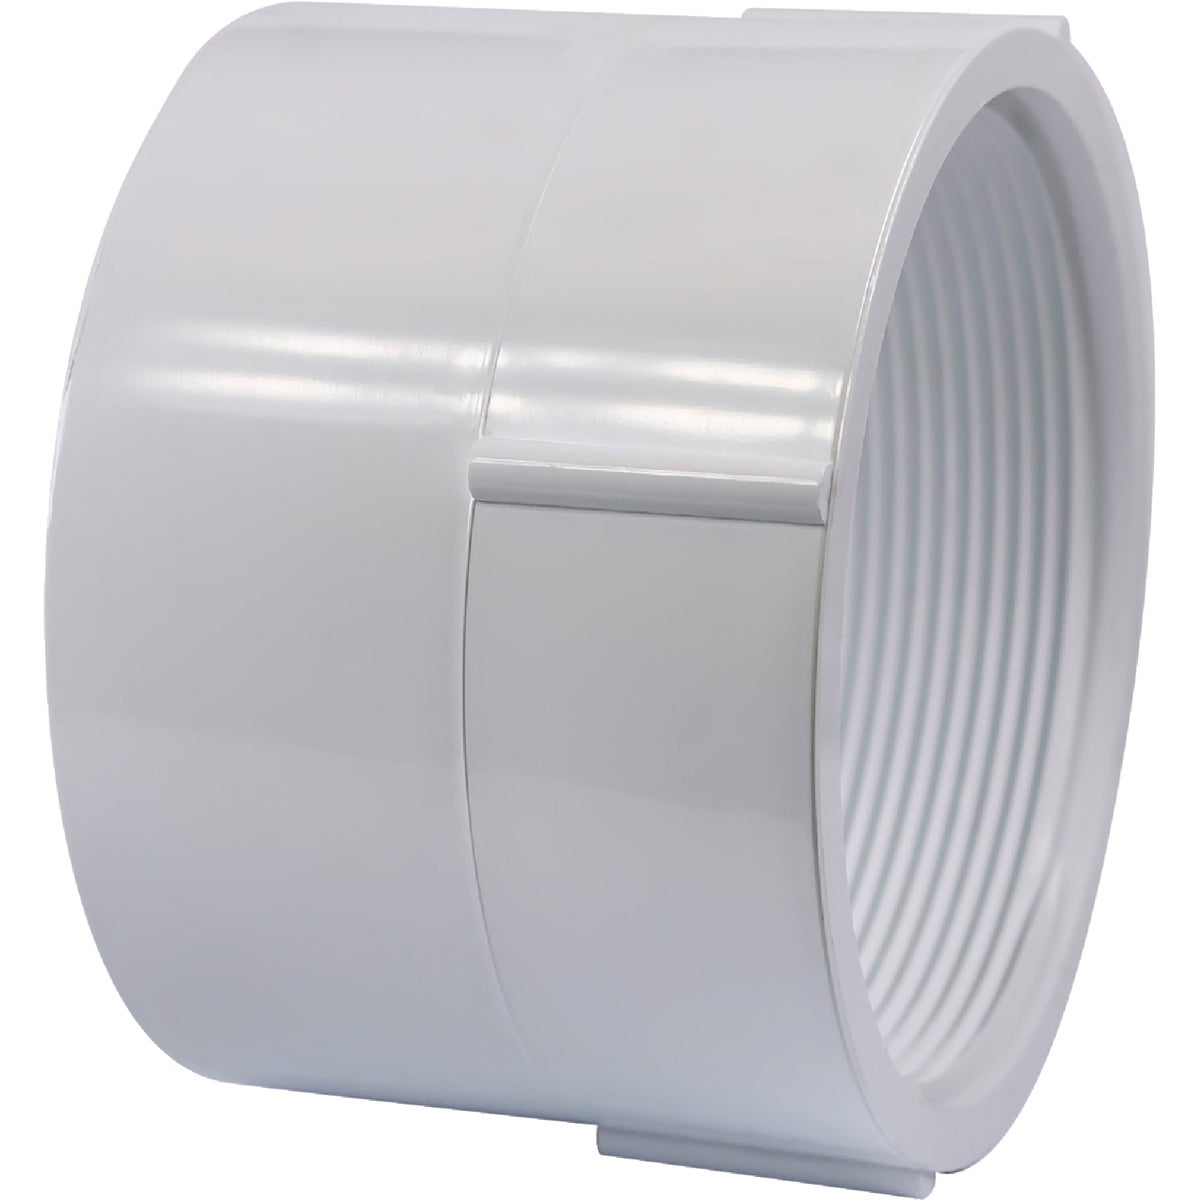 1-1/2X1-1/4 FEM ADAPTER - 70311 by Genova Inc  Pvc Dwv